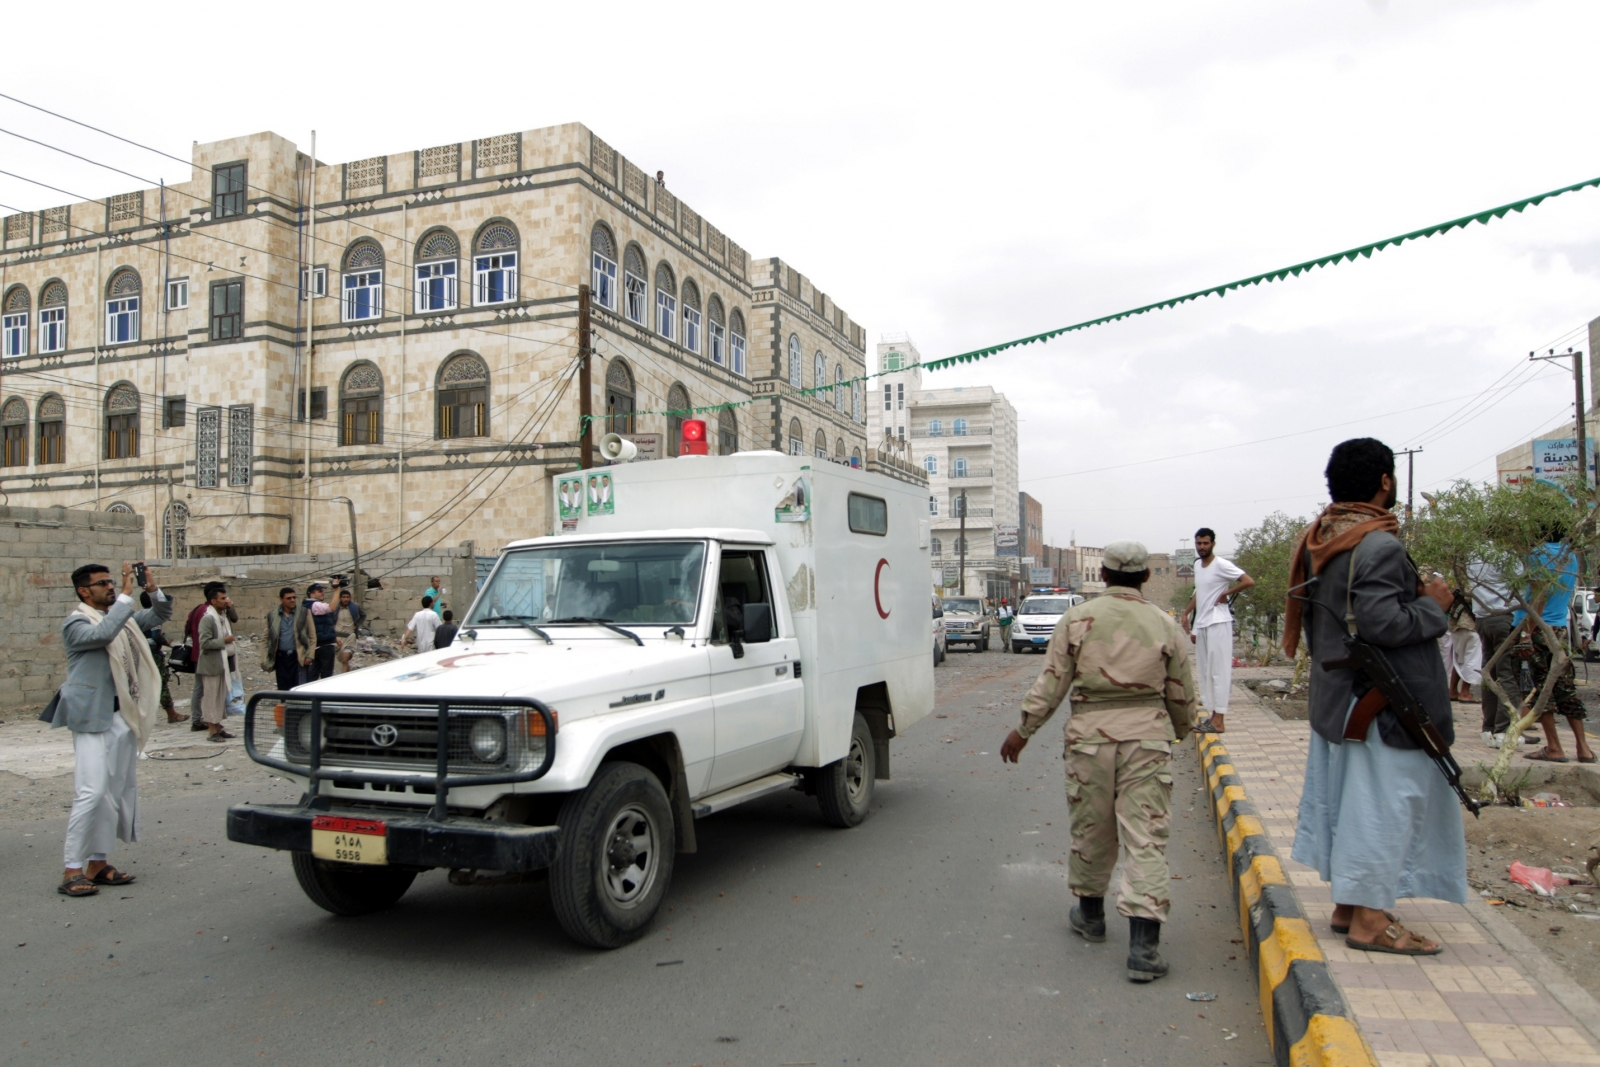 Yemen conflict Houthi rebels red crescent